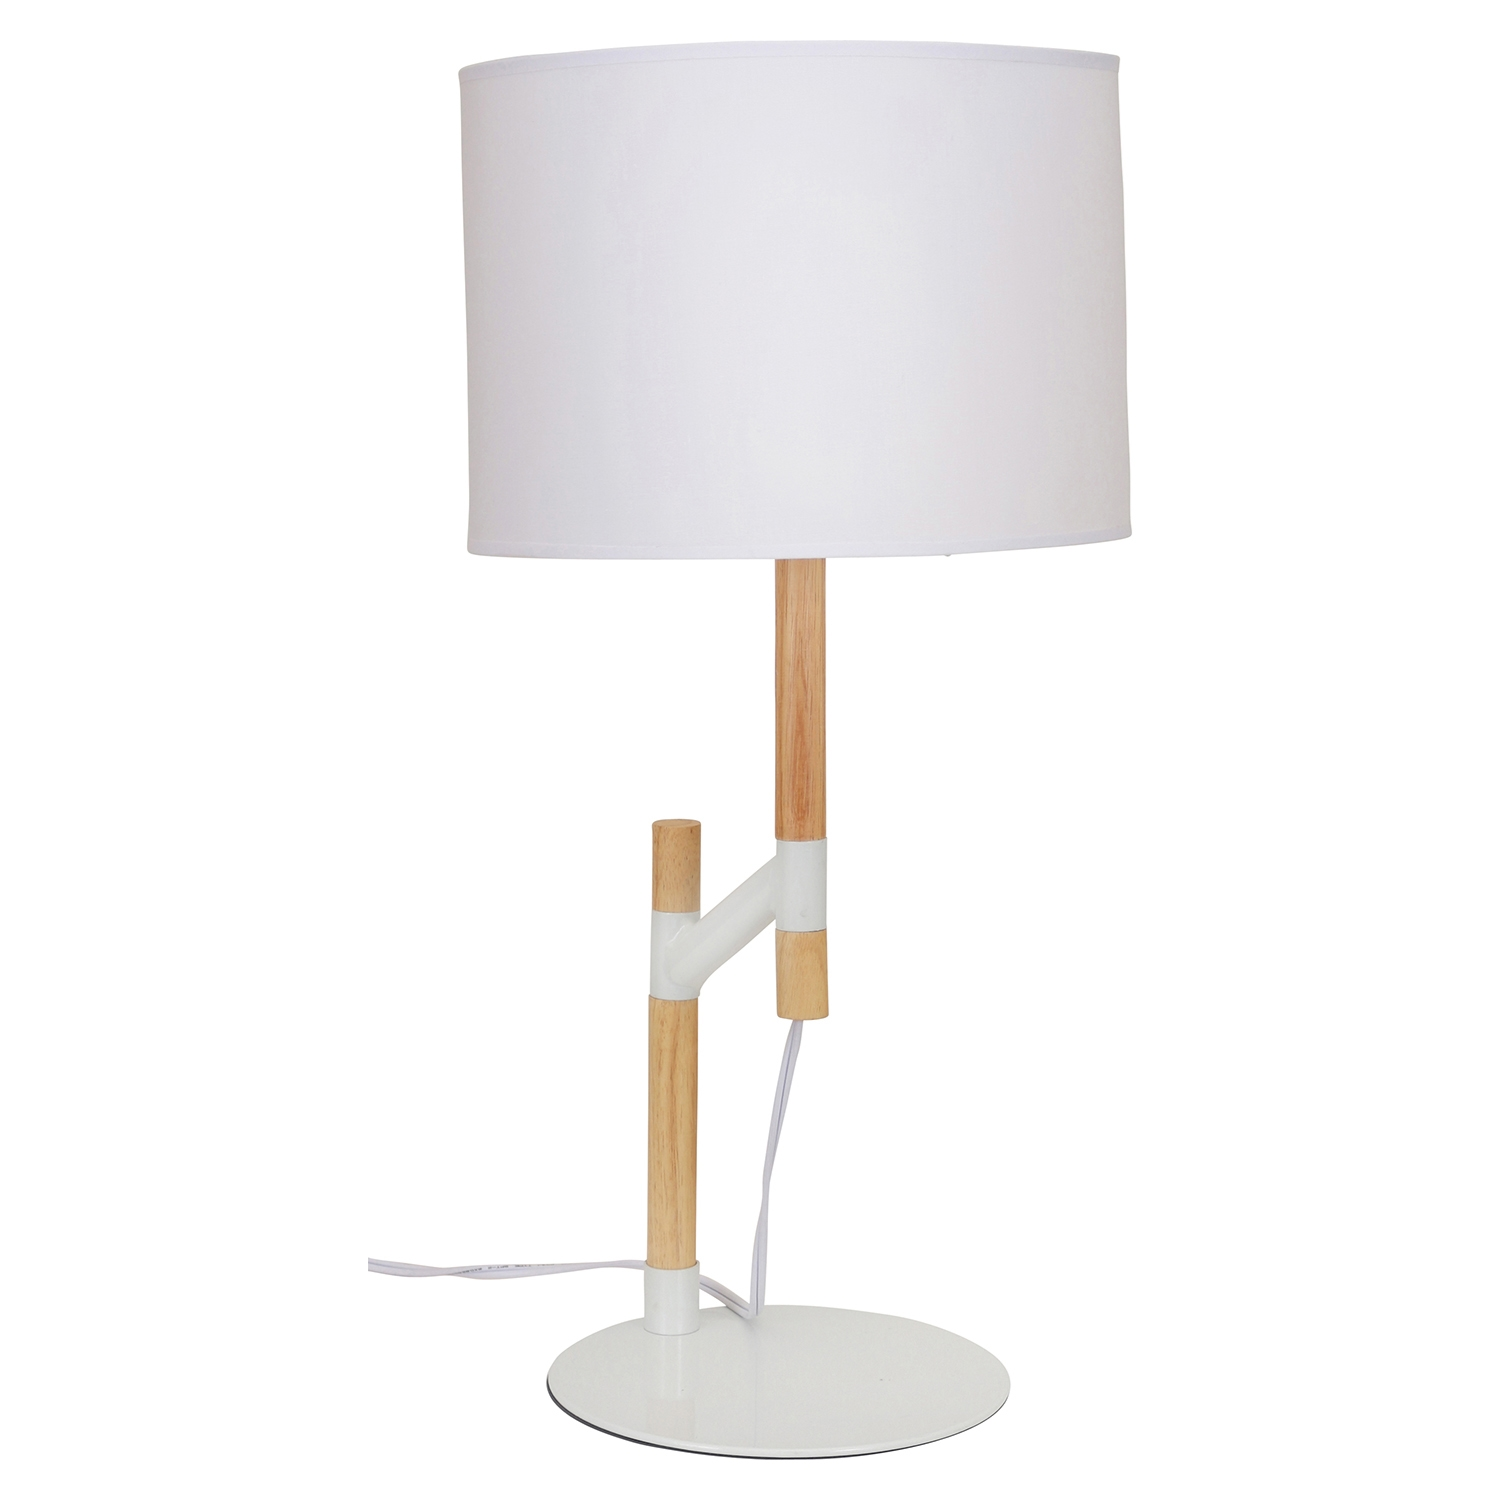 Raised Table Lamp - Medium Brown, White